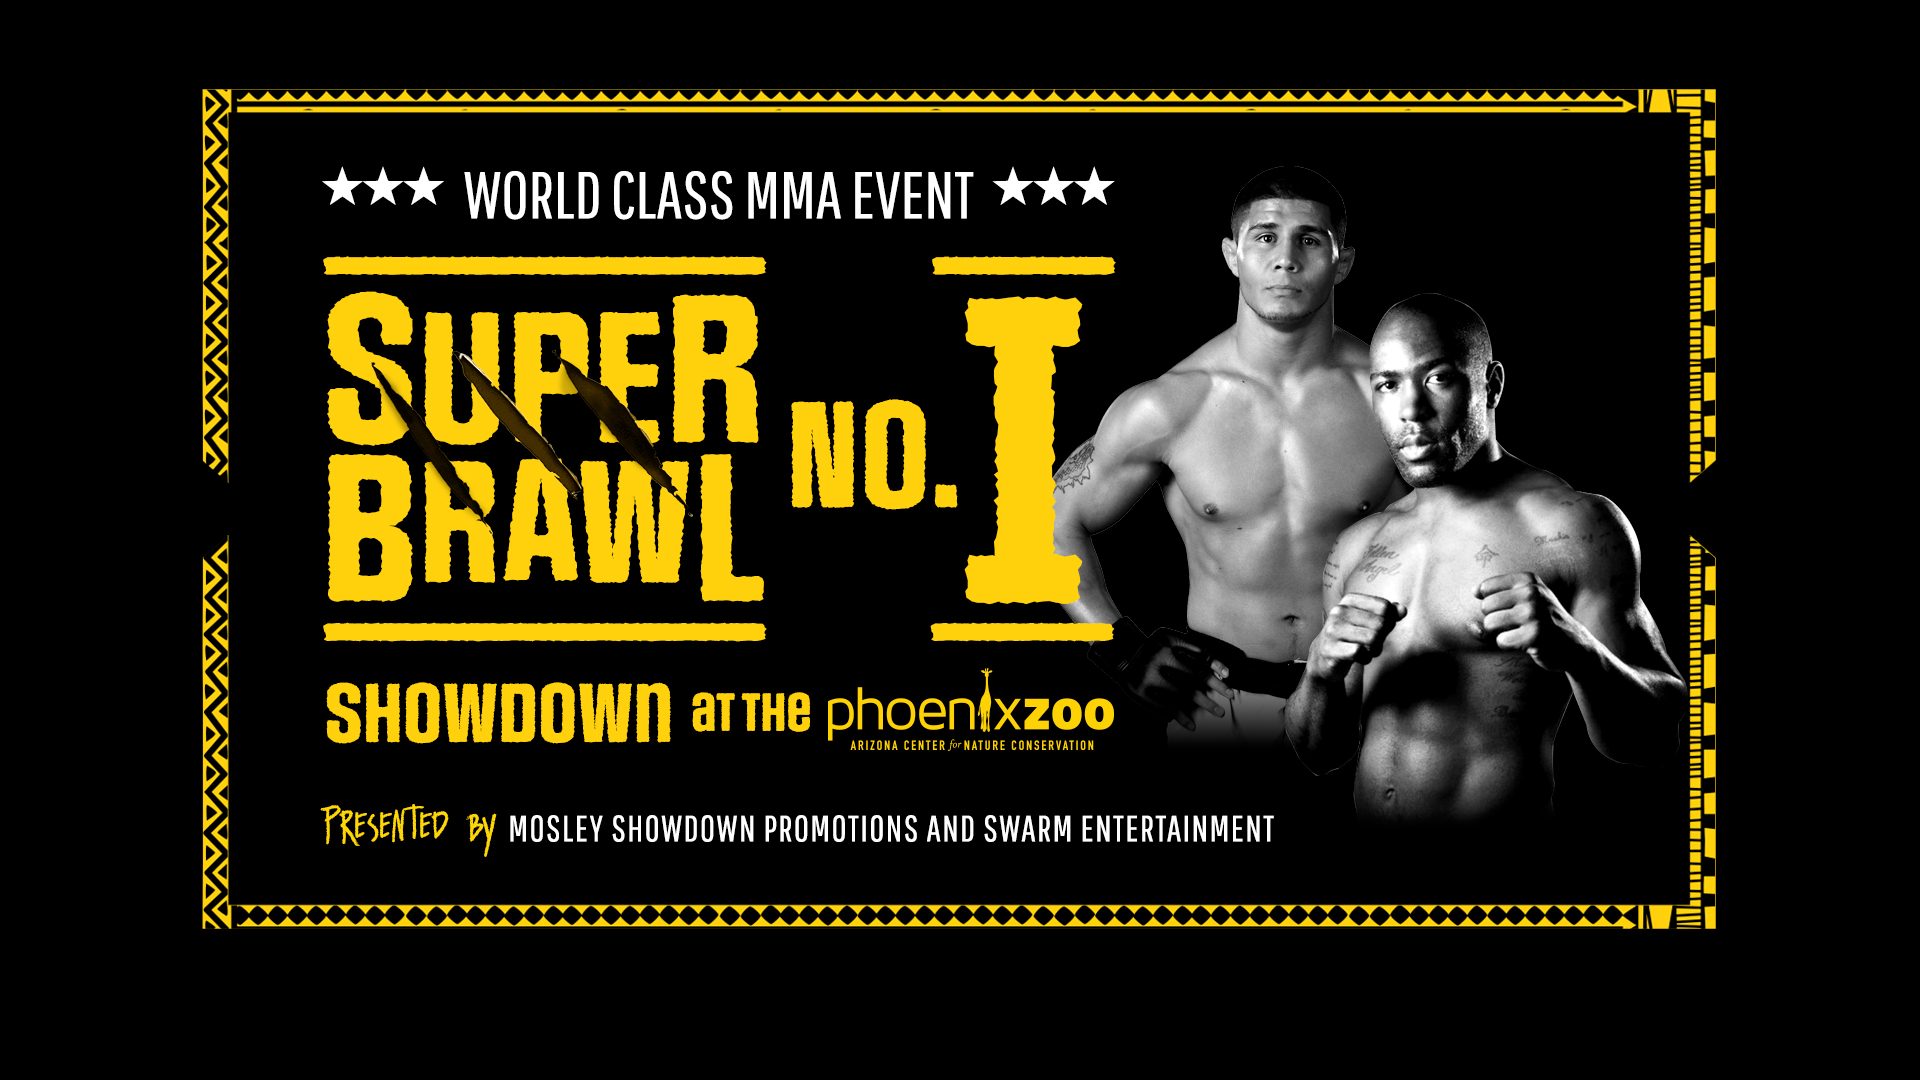 Super Brawl No. 1 - Showdown at the Phoenix Zoo